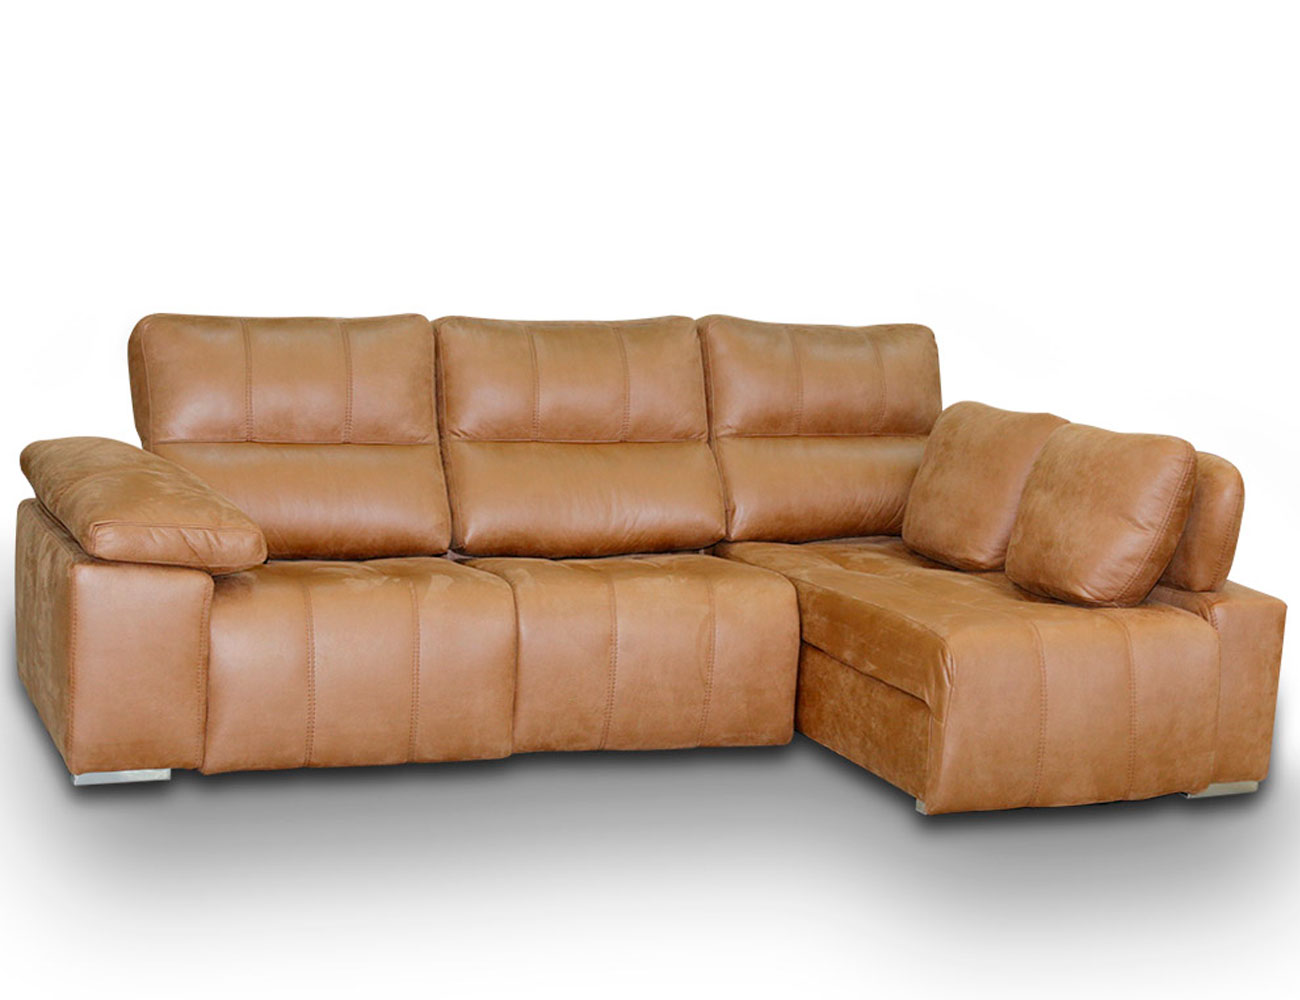 Sofa chaiselongue relax 2 motores anti manchas19